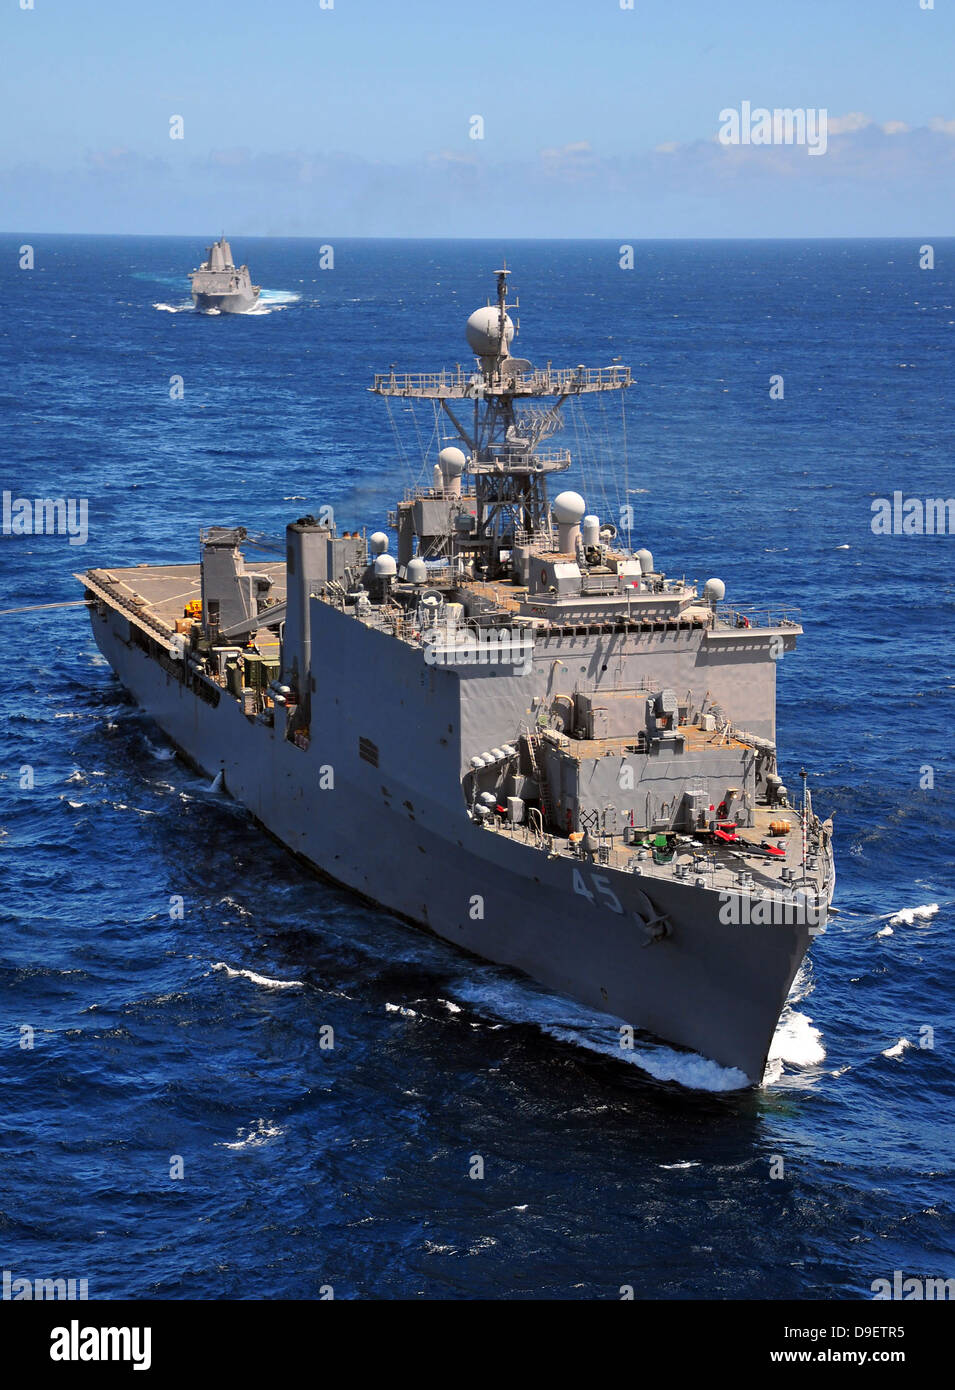 USS Comstock leads a convoy of ships in the Indian Ocean. - Stock Image